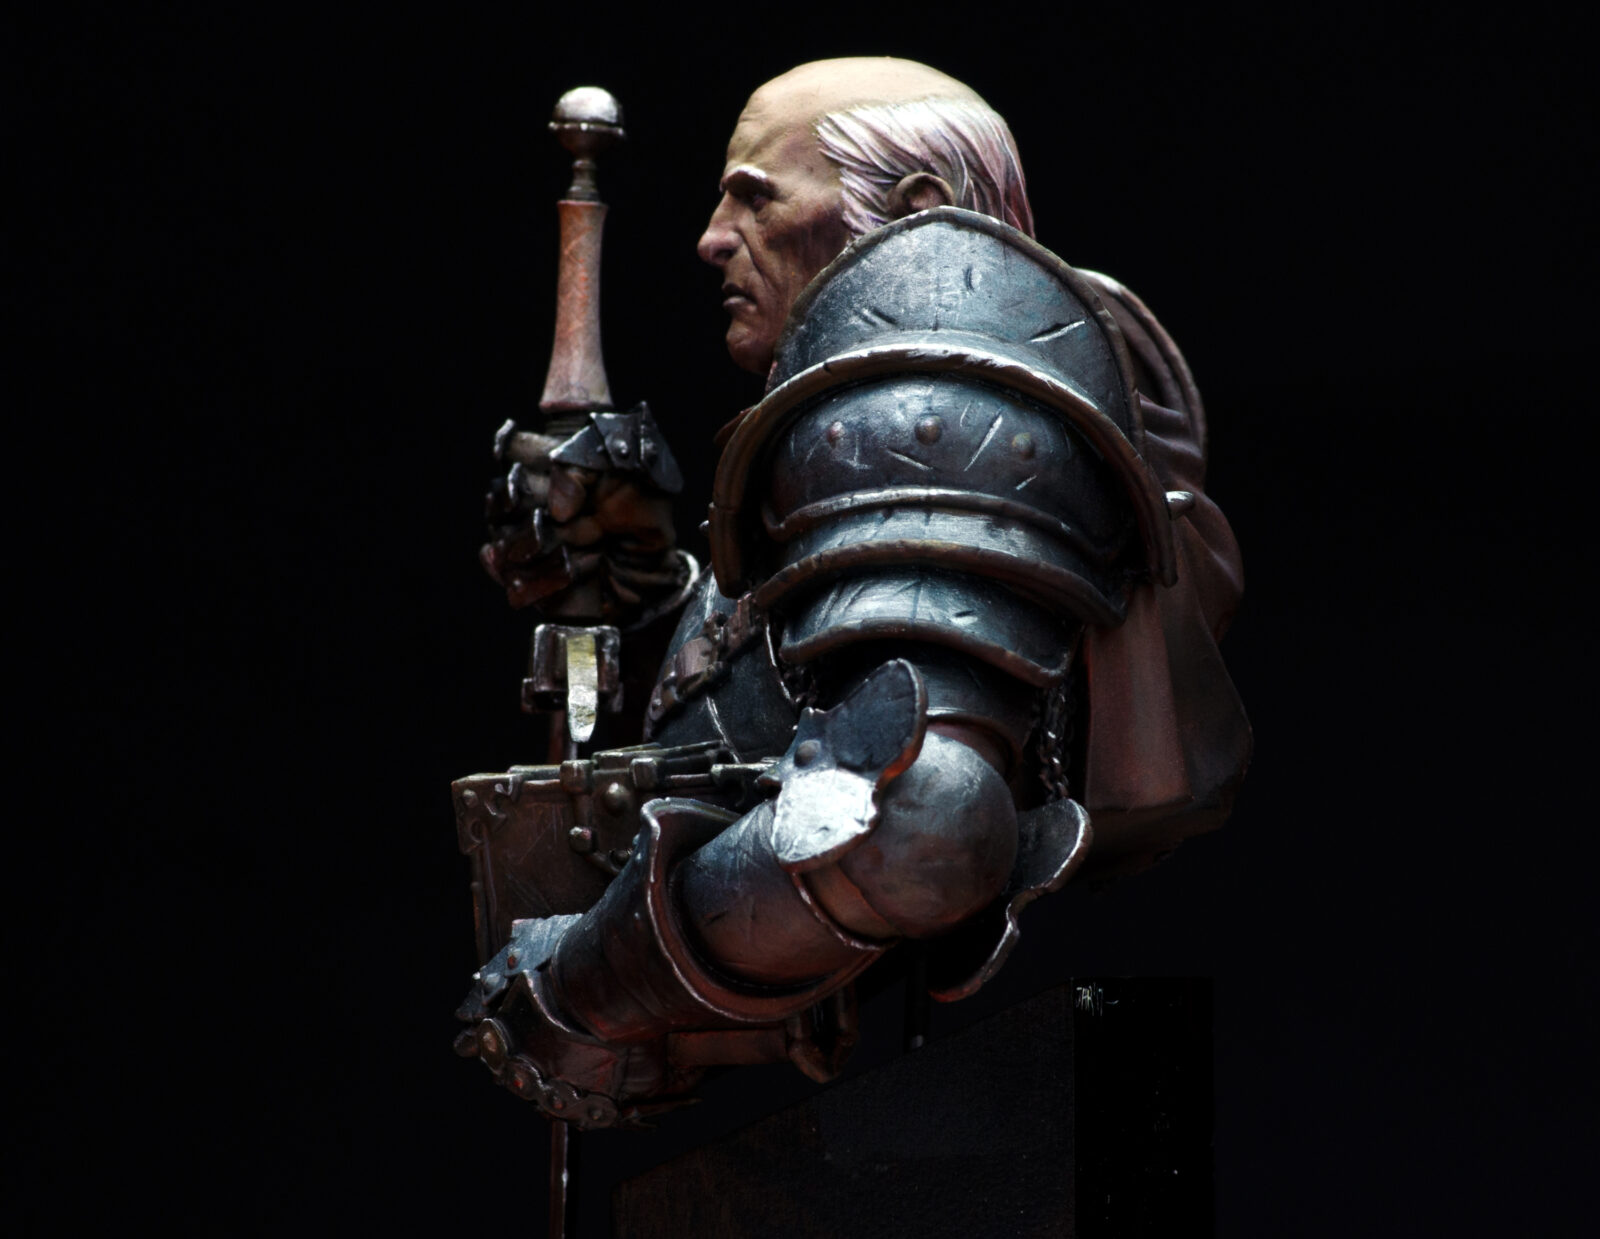 Uther14